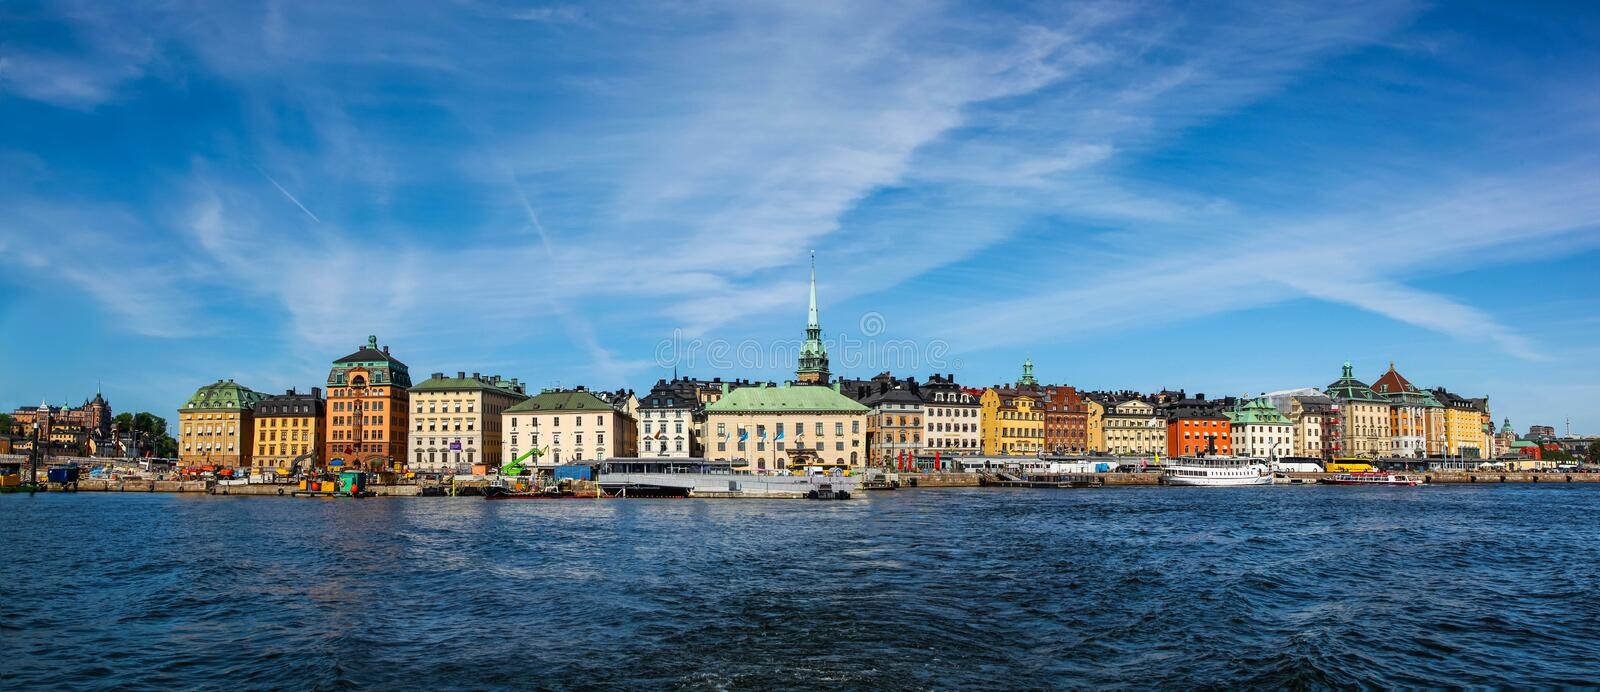 Panoramic view from the water of the colorful buildings of Stockholm harbor on a bright sunny day. Panoramic view from the water of the colorful buildings of royalty free stock images